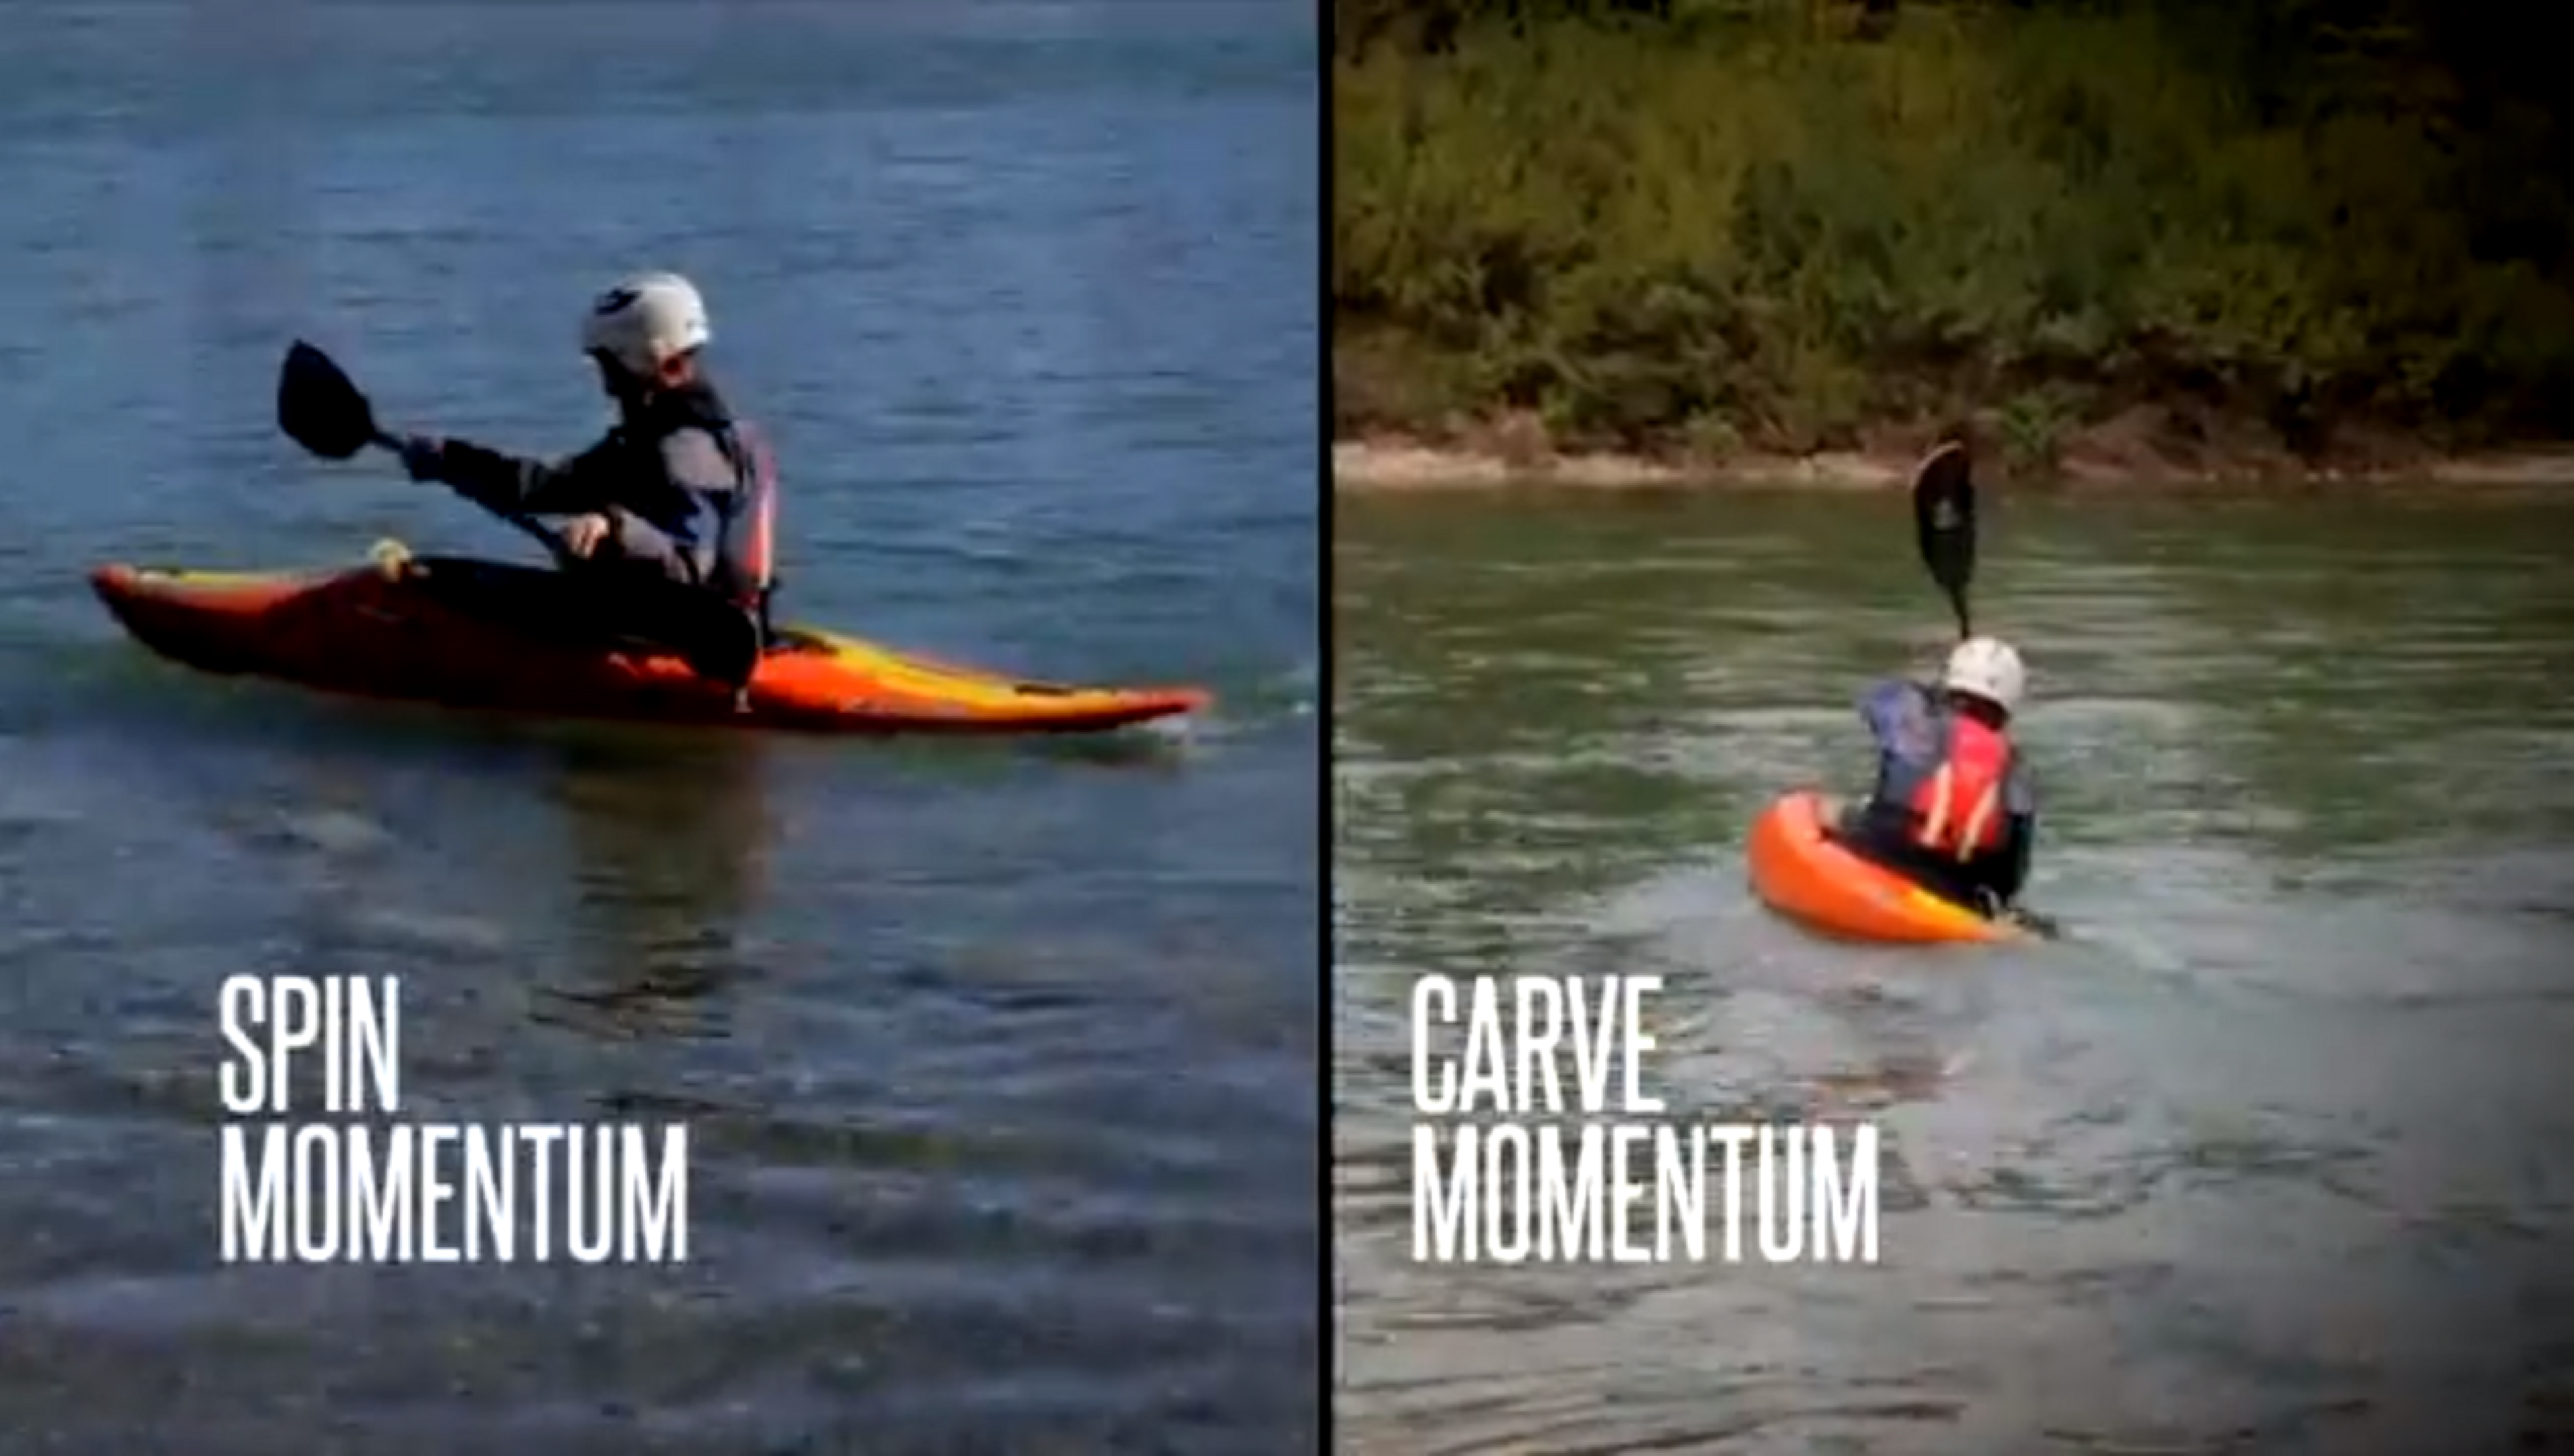 How to ID Spin vs. Carve Momentum - Beginner Kayak Instructional Video